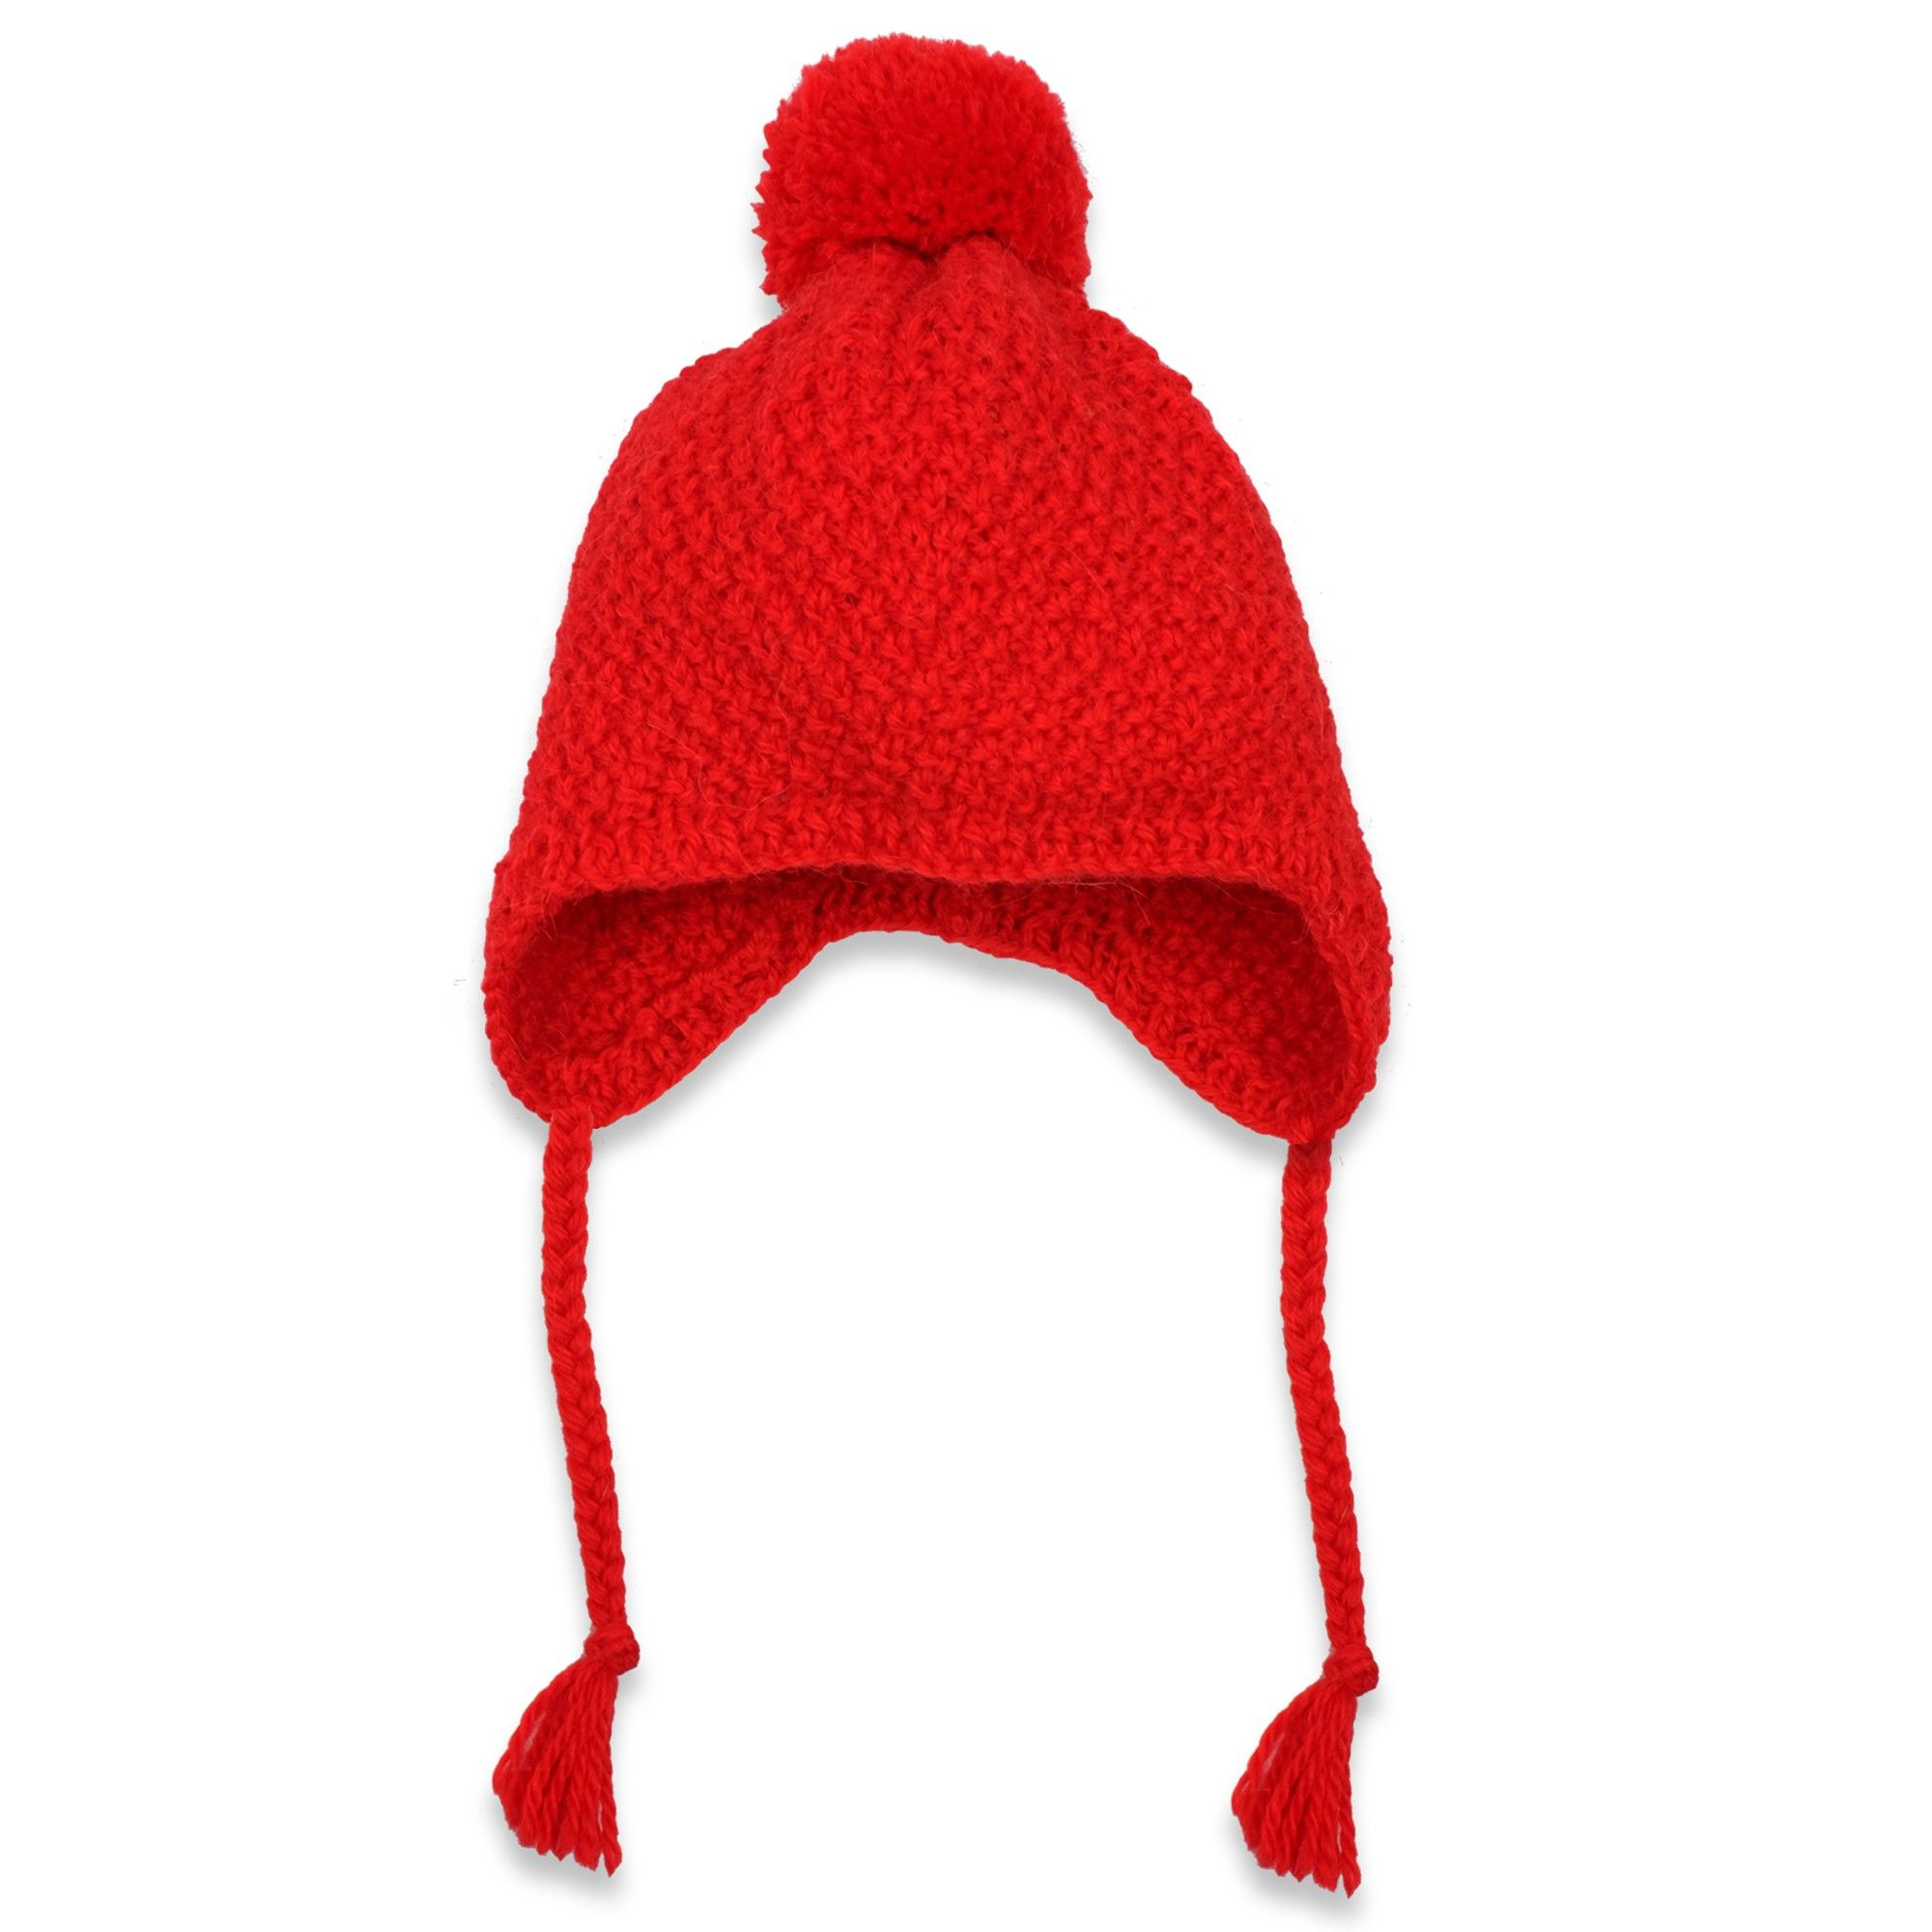 6ed4f40c8f5 Red peruvian hat knitted in moss stitch made from wool and alpaca. For baby  girls. Covers the ears and neck. Best worn with the